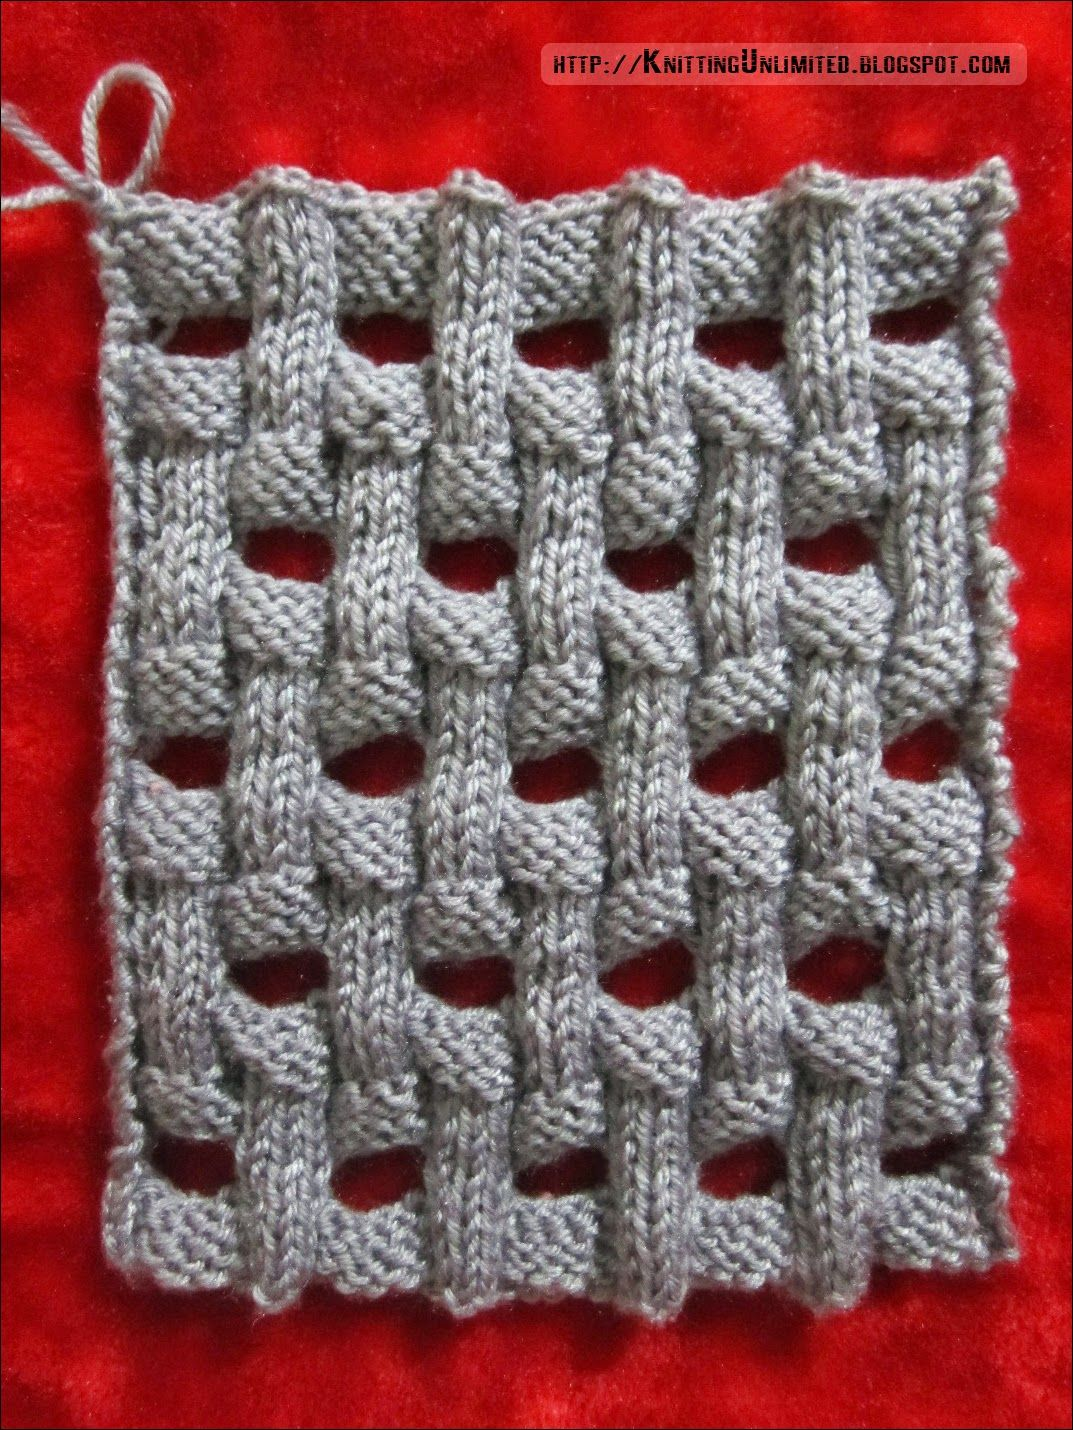 Knitting stitch beautiful slip stitch pattern it is 20 rows openwork basket weave knitting pattern bankloansurffo Images